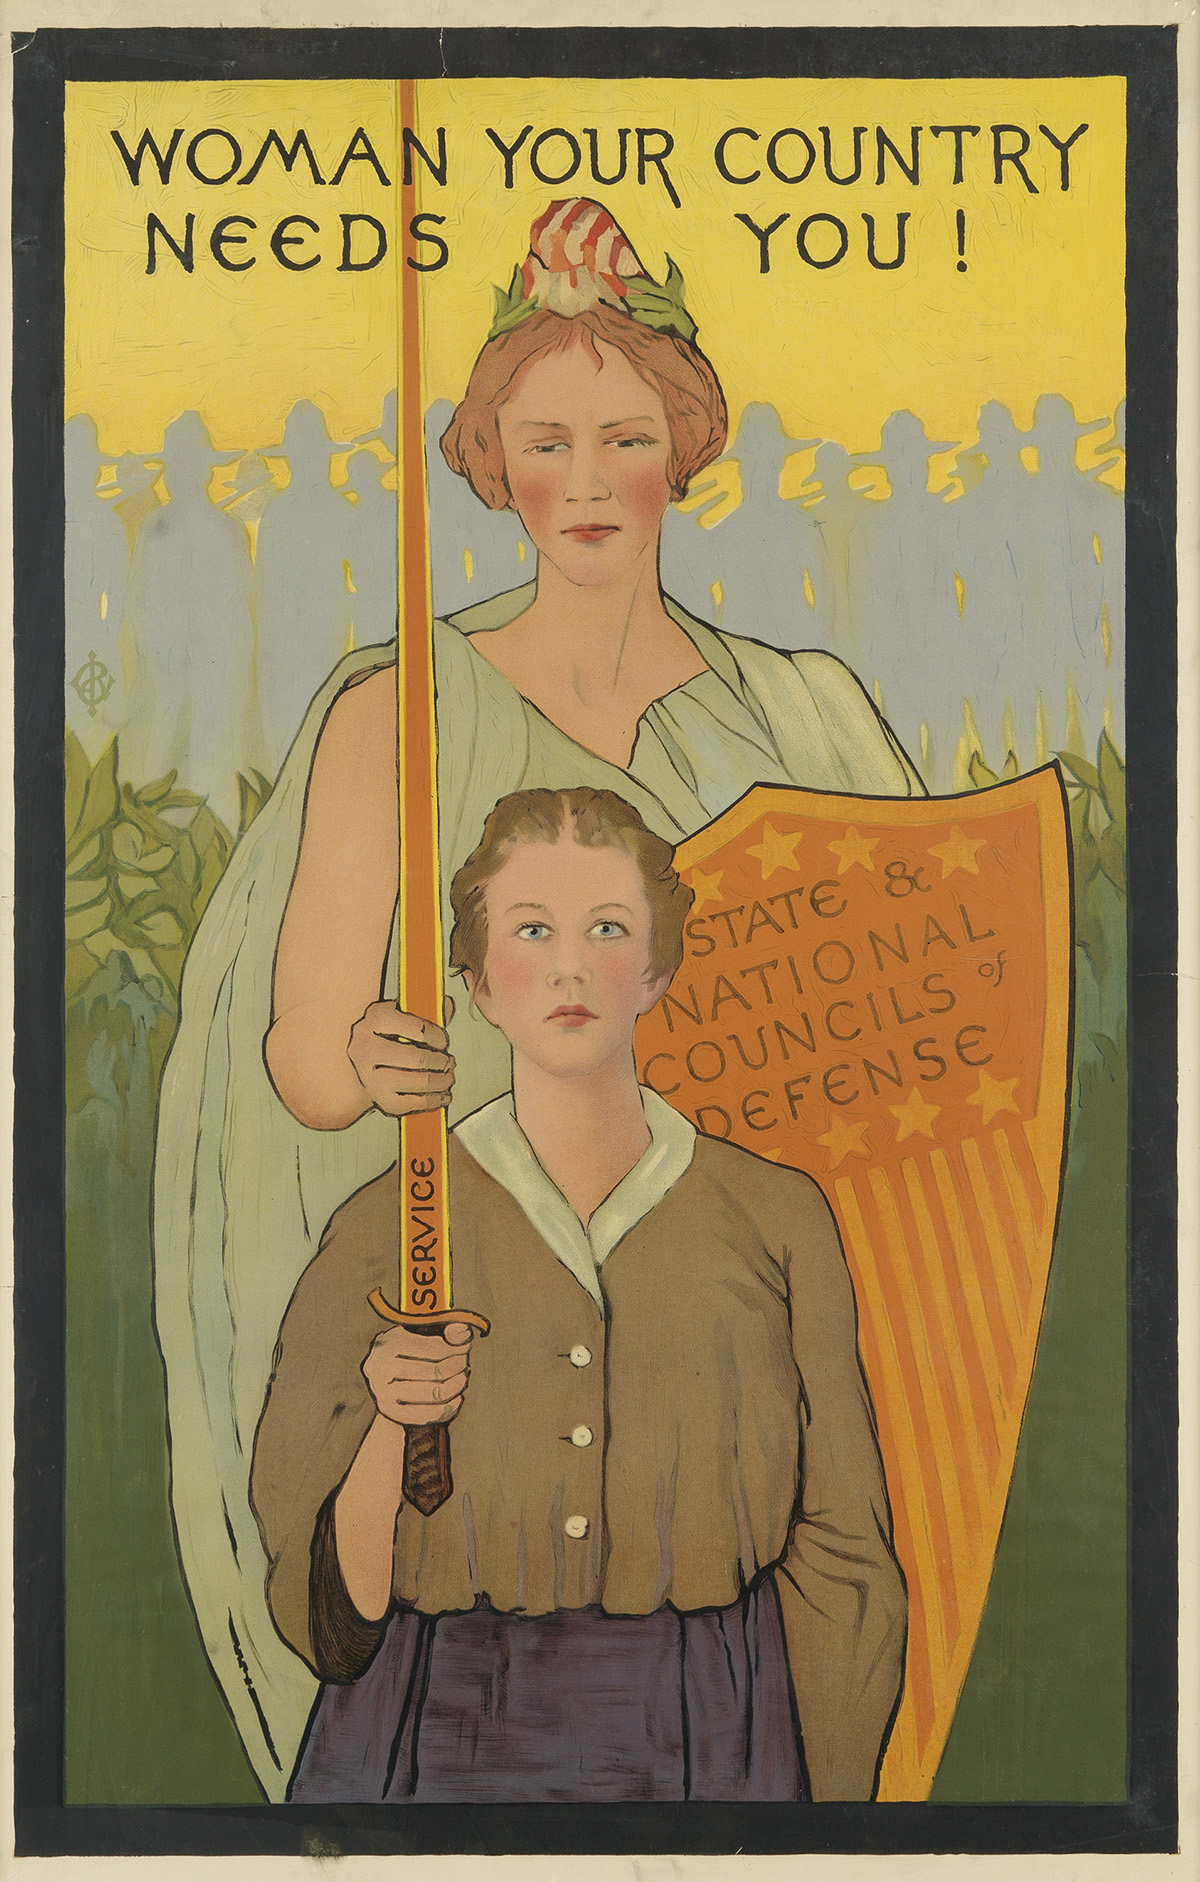 MONOGRAM-UNKNOWN-WOMAN-YOUR-COUNTRY-NEEDS-YOU-Circa-1917-45x